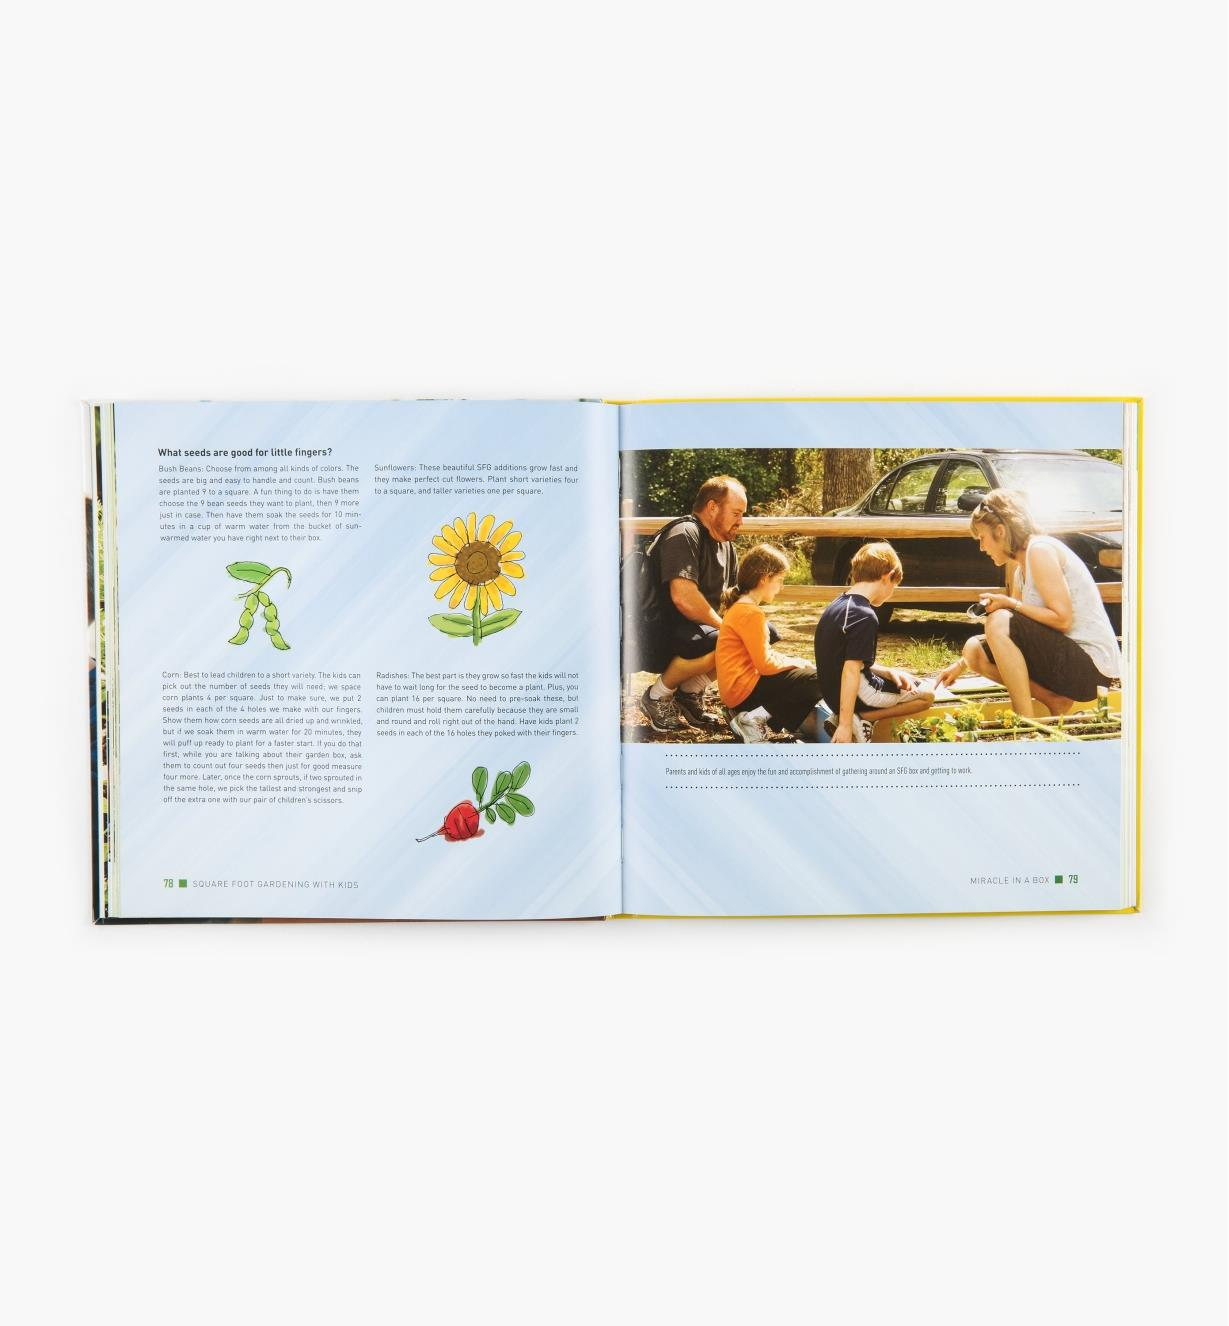 LA769 - Square Foot Gardening With Kids